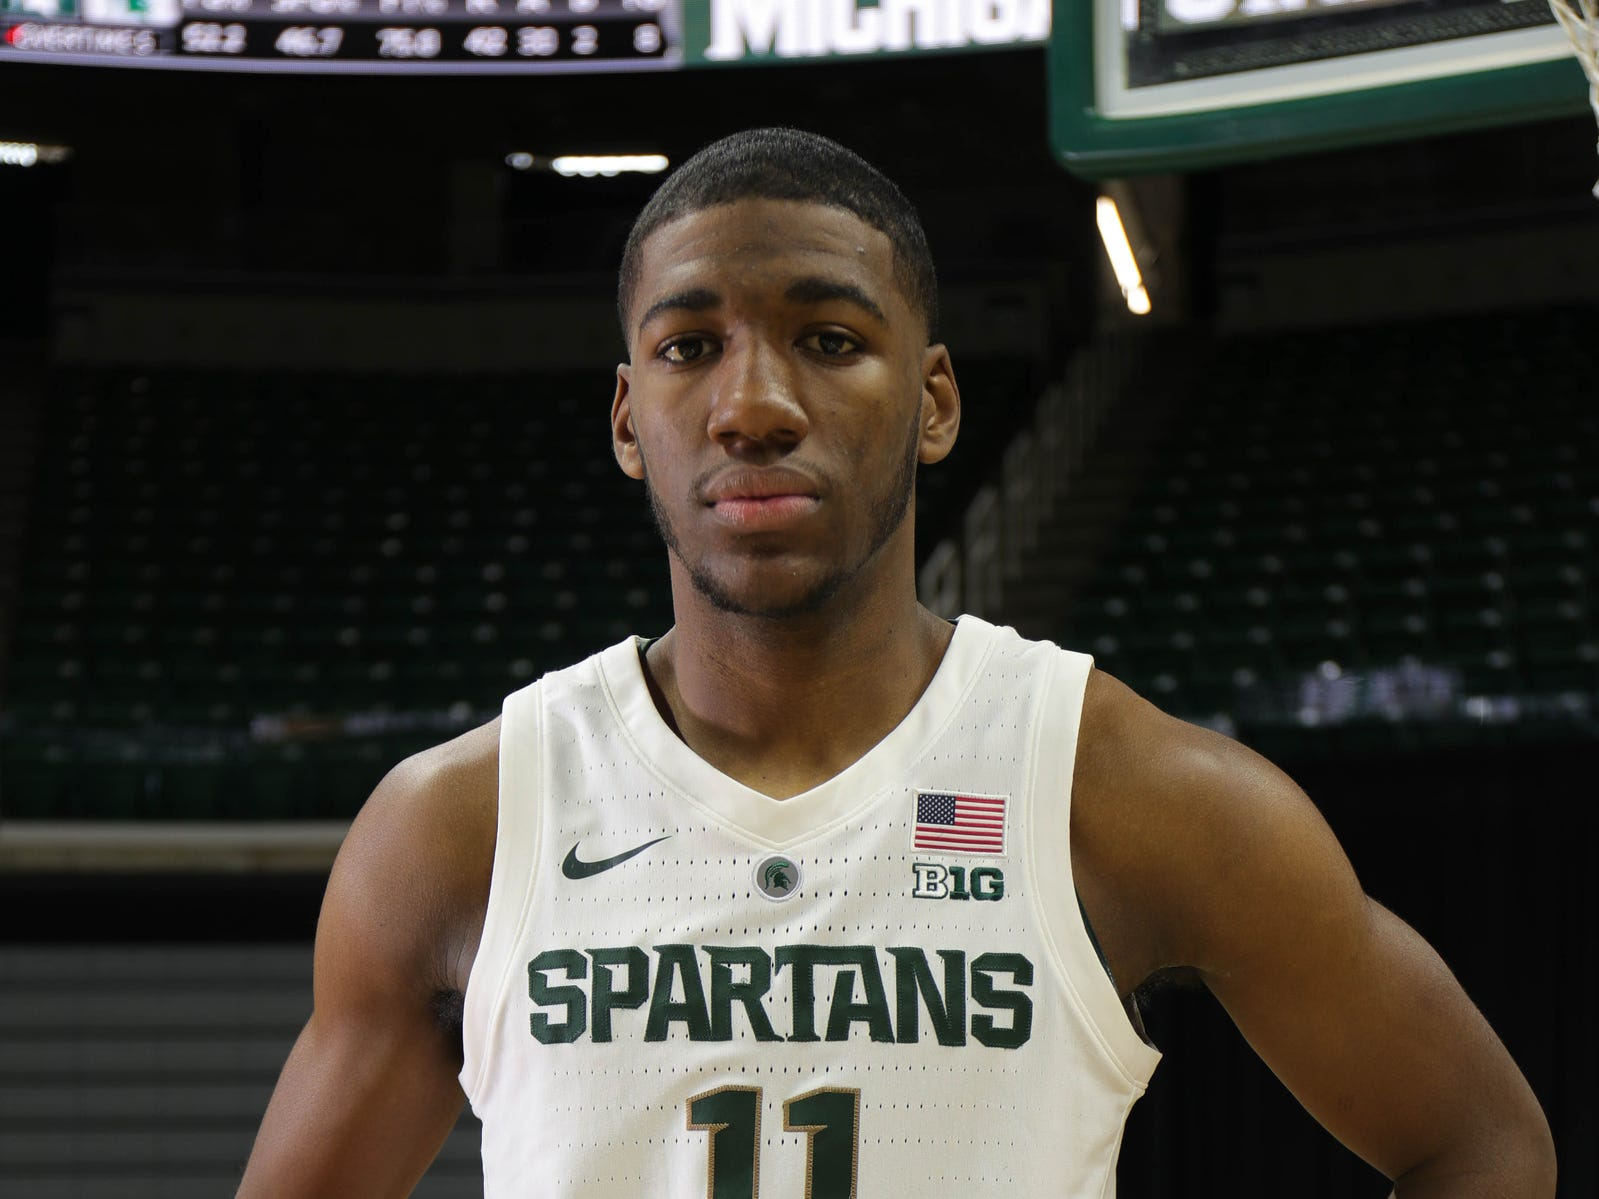 Michigan State forward Aaron Henry at media day Thursday, Oct. 25, 2018 at Breslin Center in East Lansing.